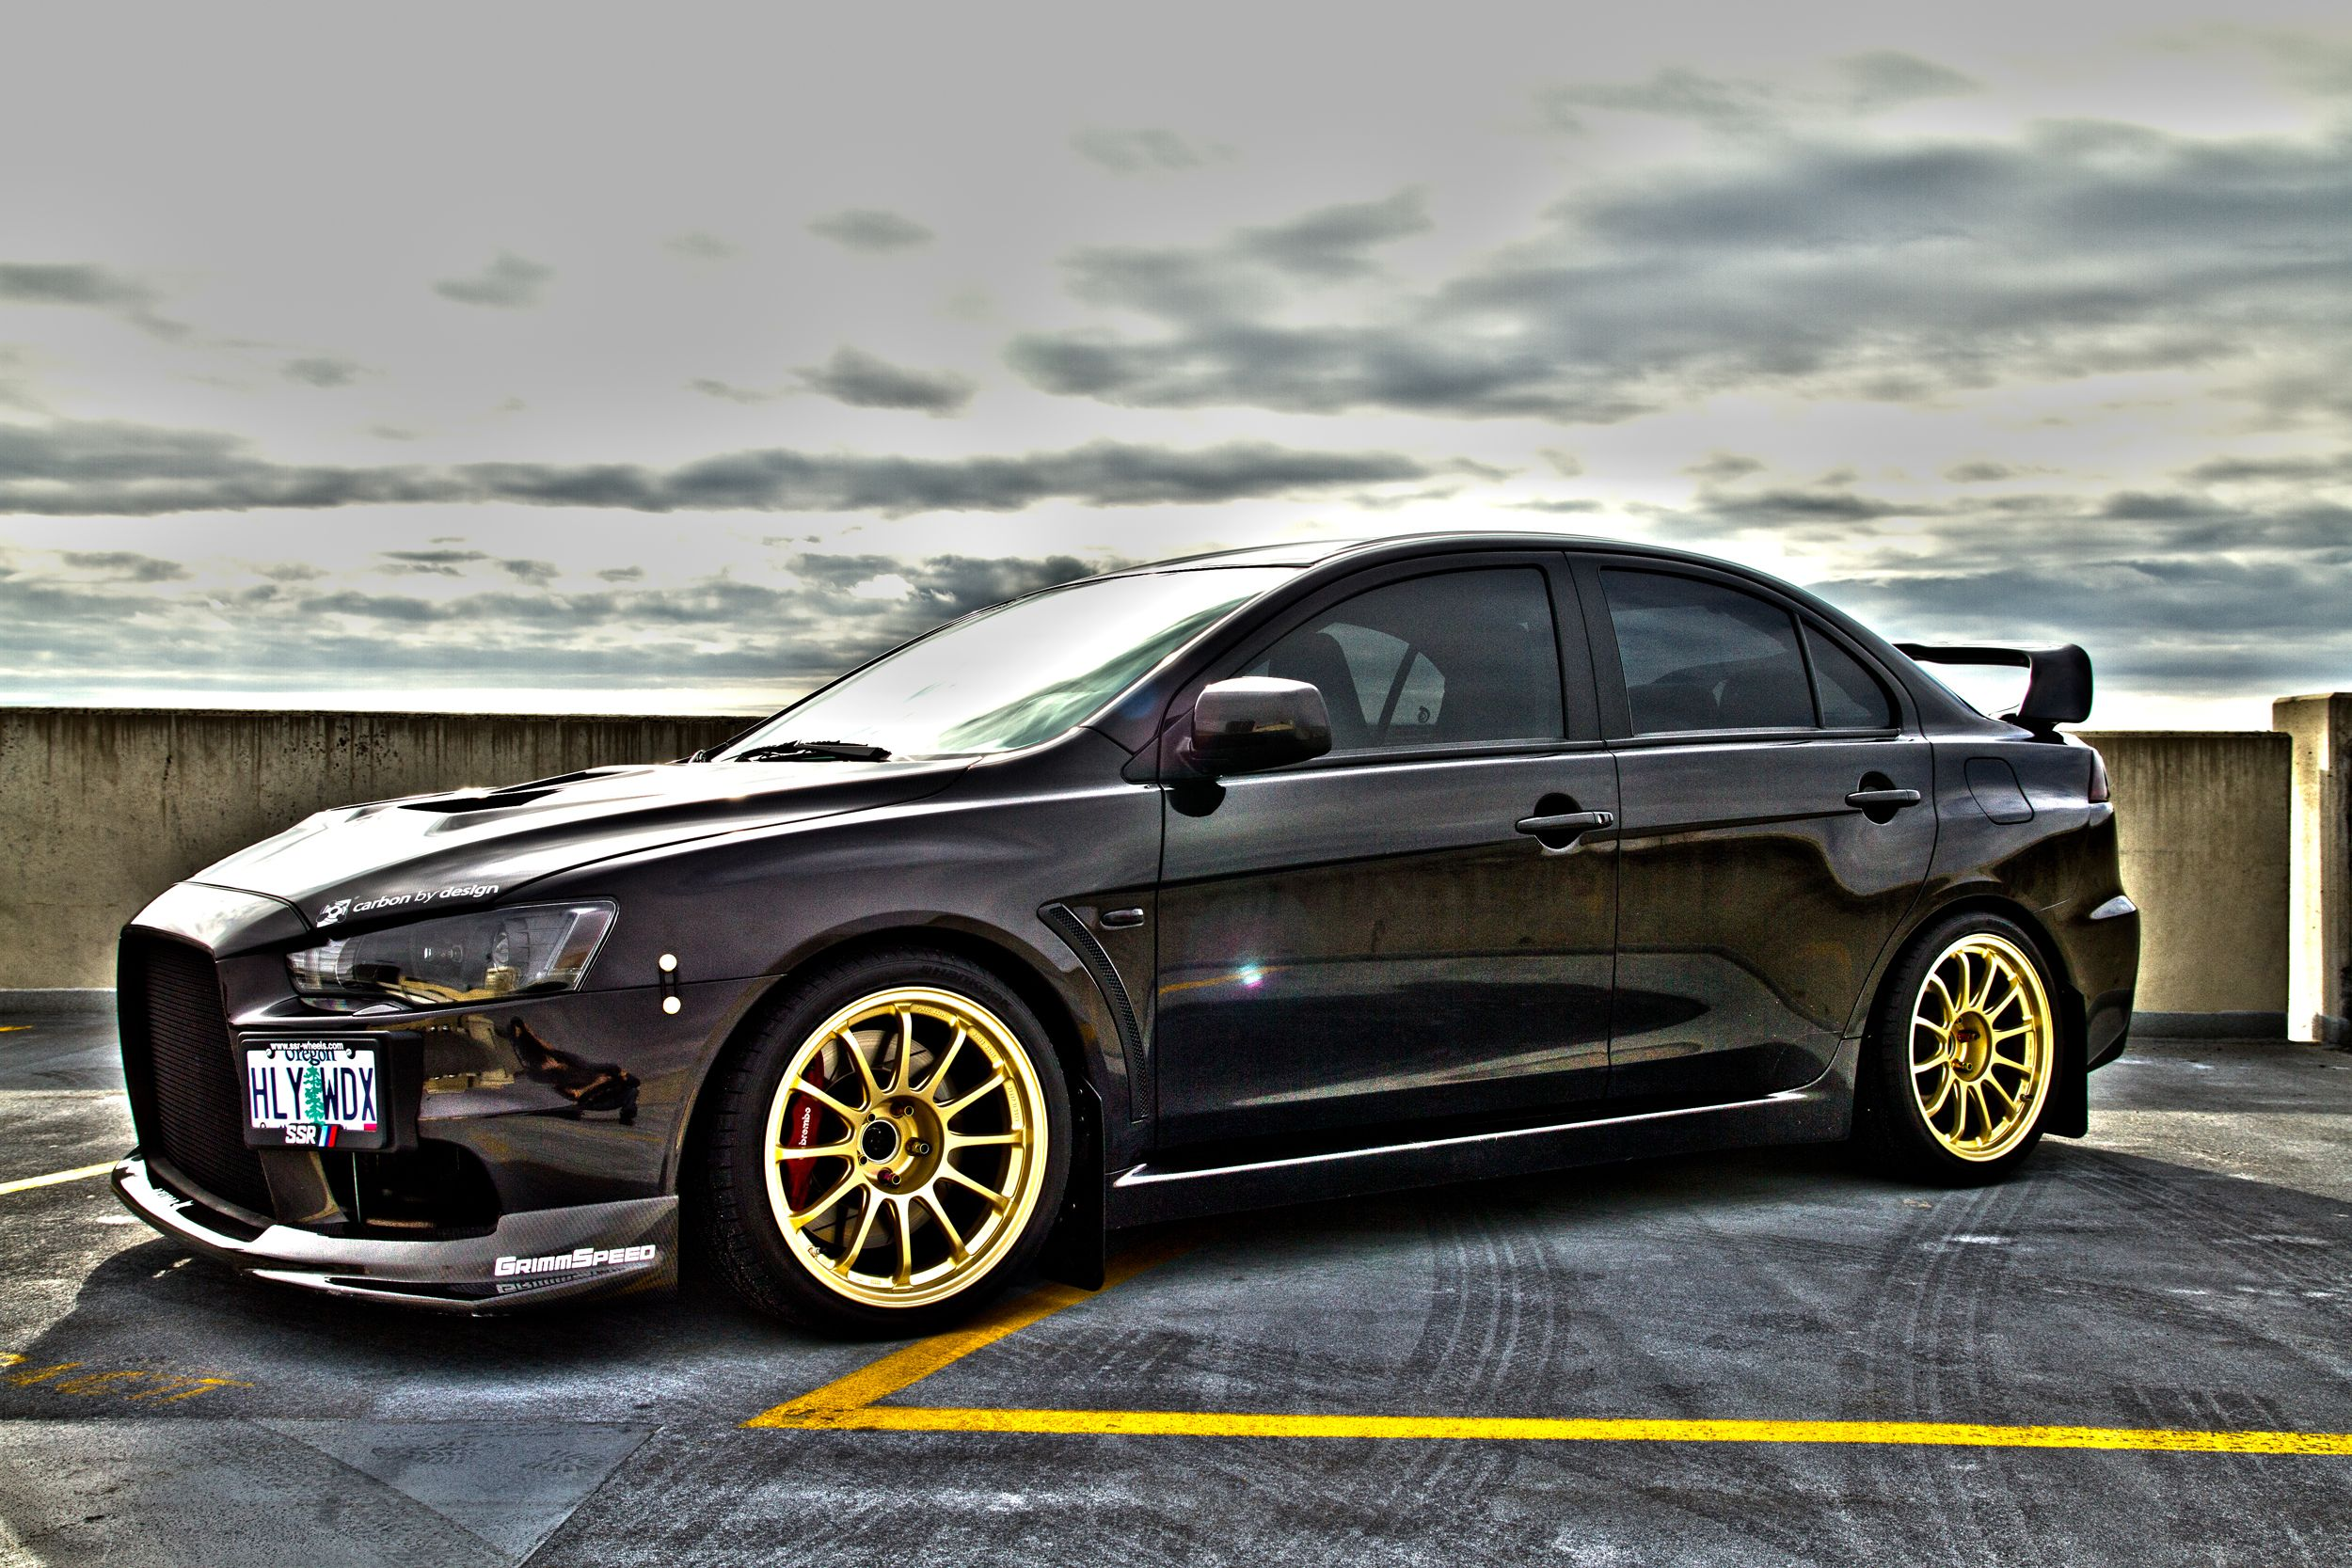 evo x sitting on ssr type f gold wheels now go clean the drool off your keyboard - Mitsubishi Evo X Custom